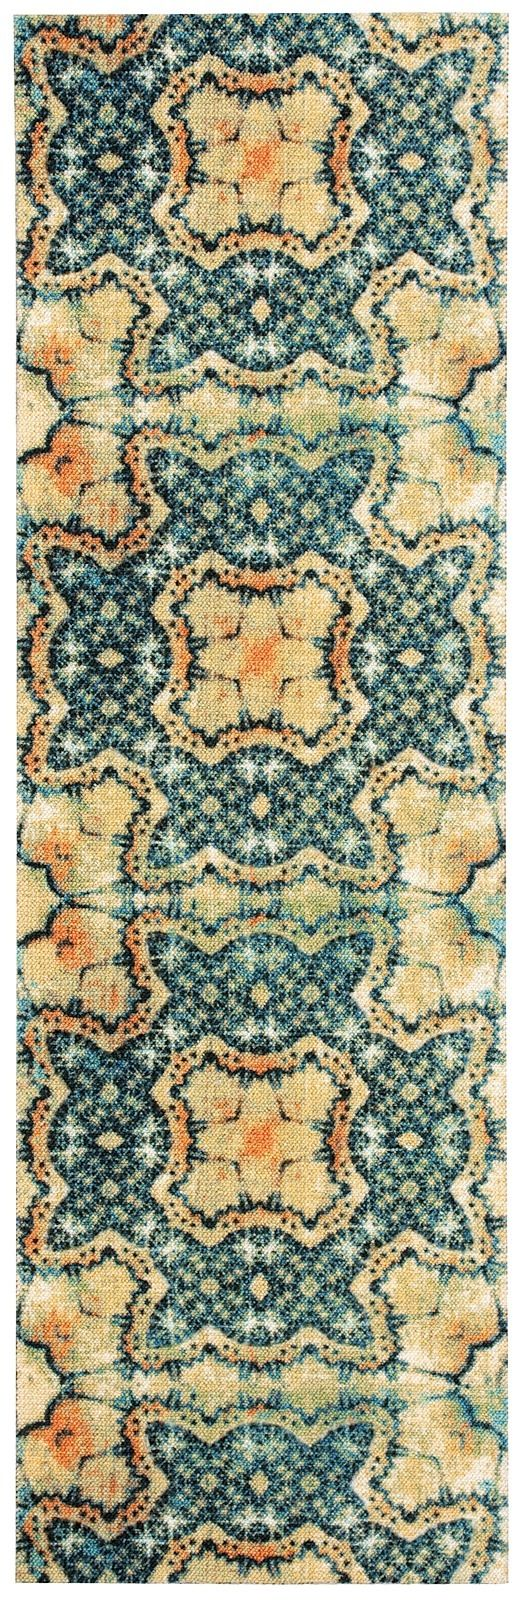 nourison vista contemporary area rug collection